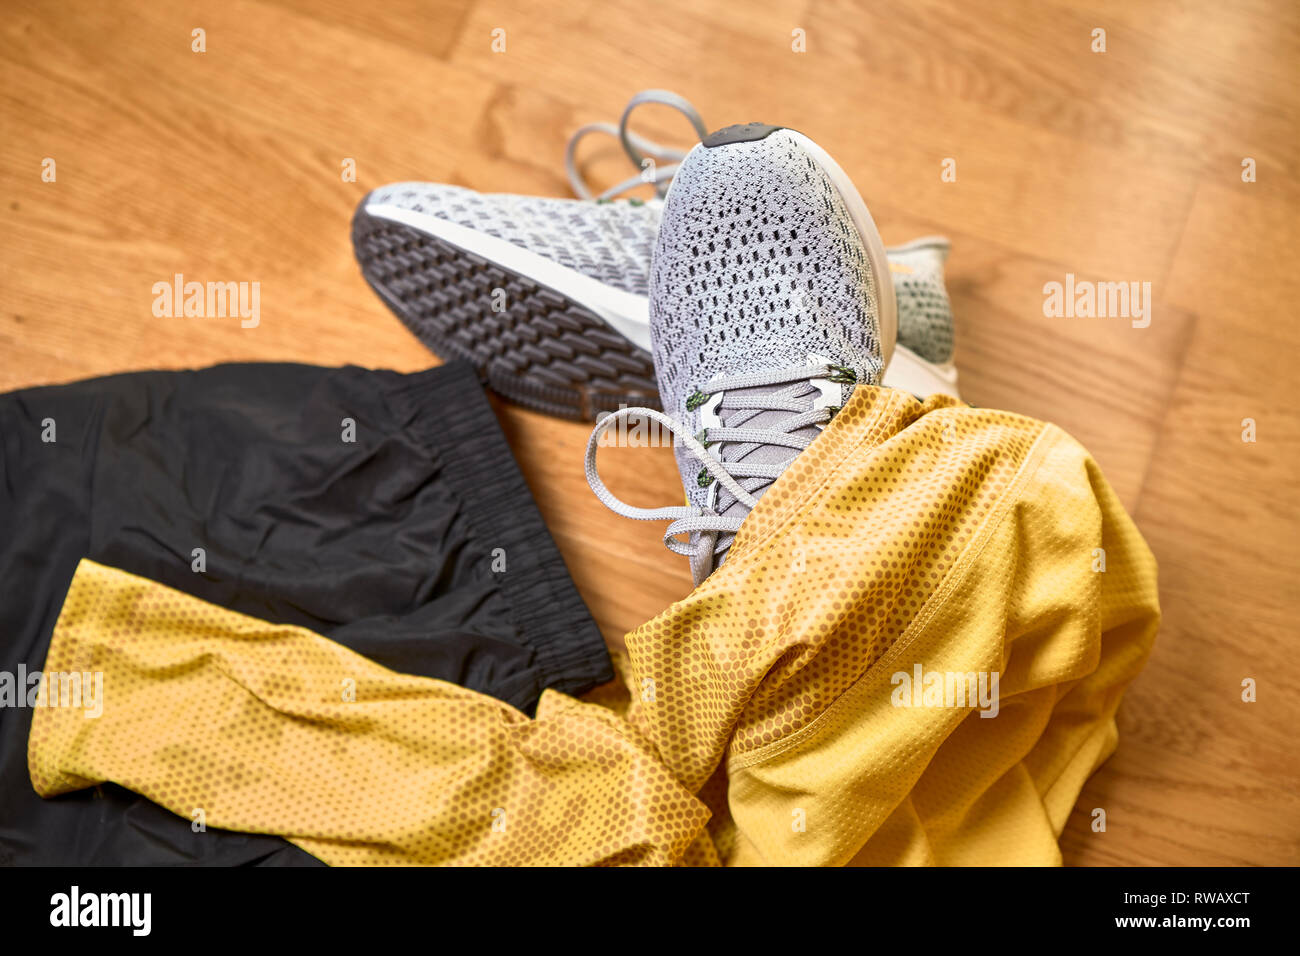 running shoes along with a shirt and shorts on a wooden gym floor Stock Photo